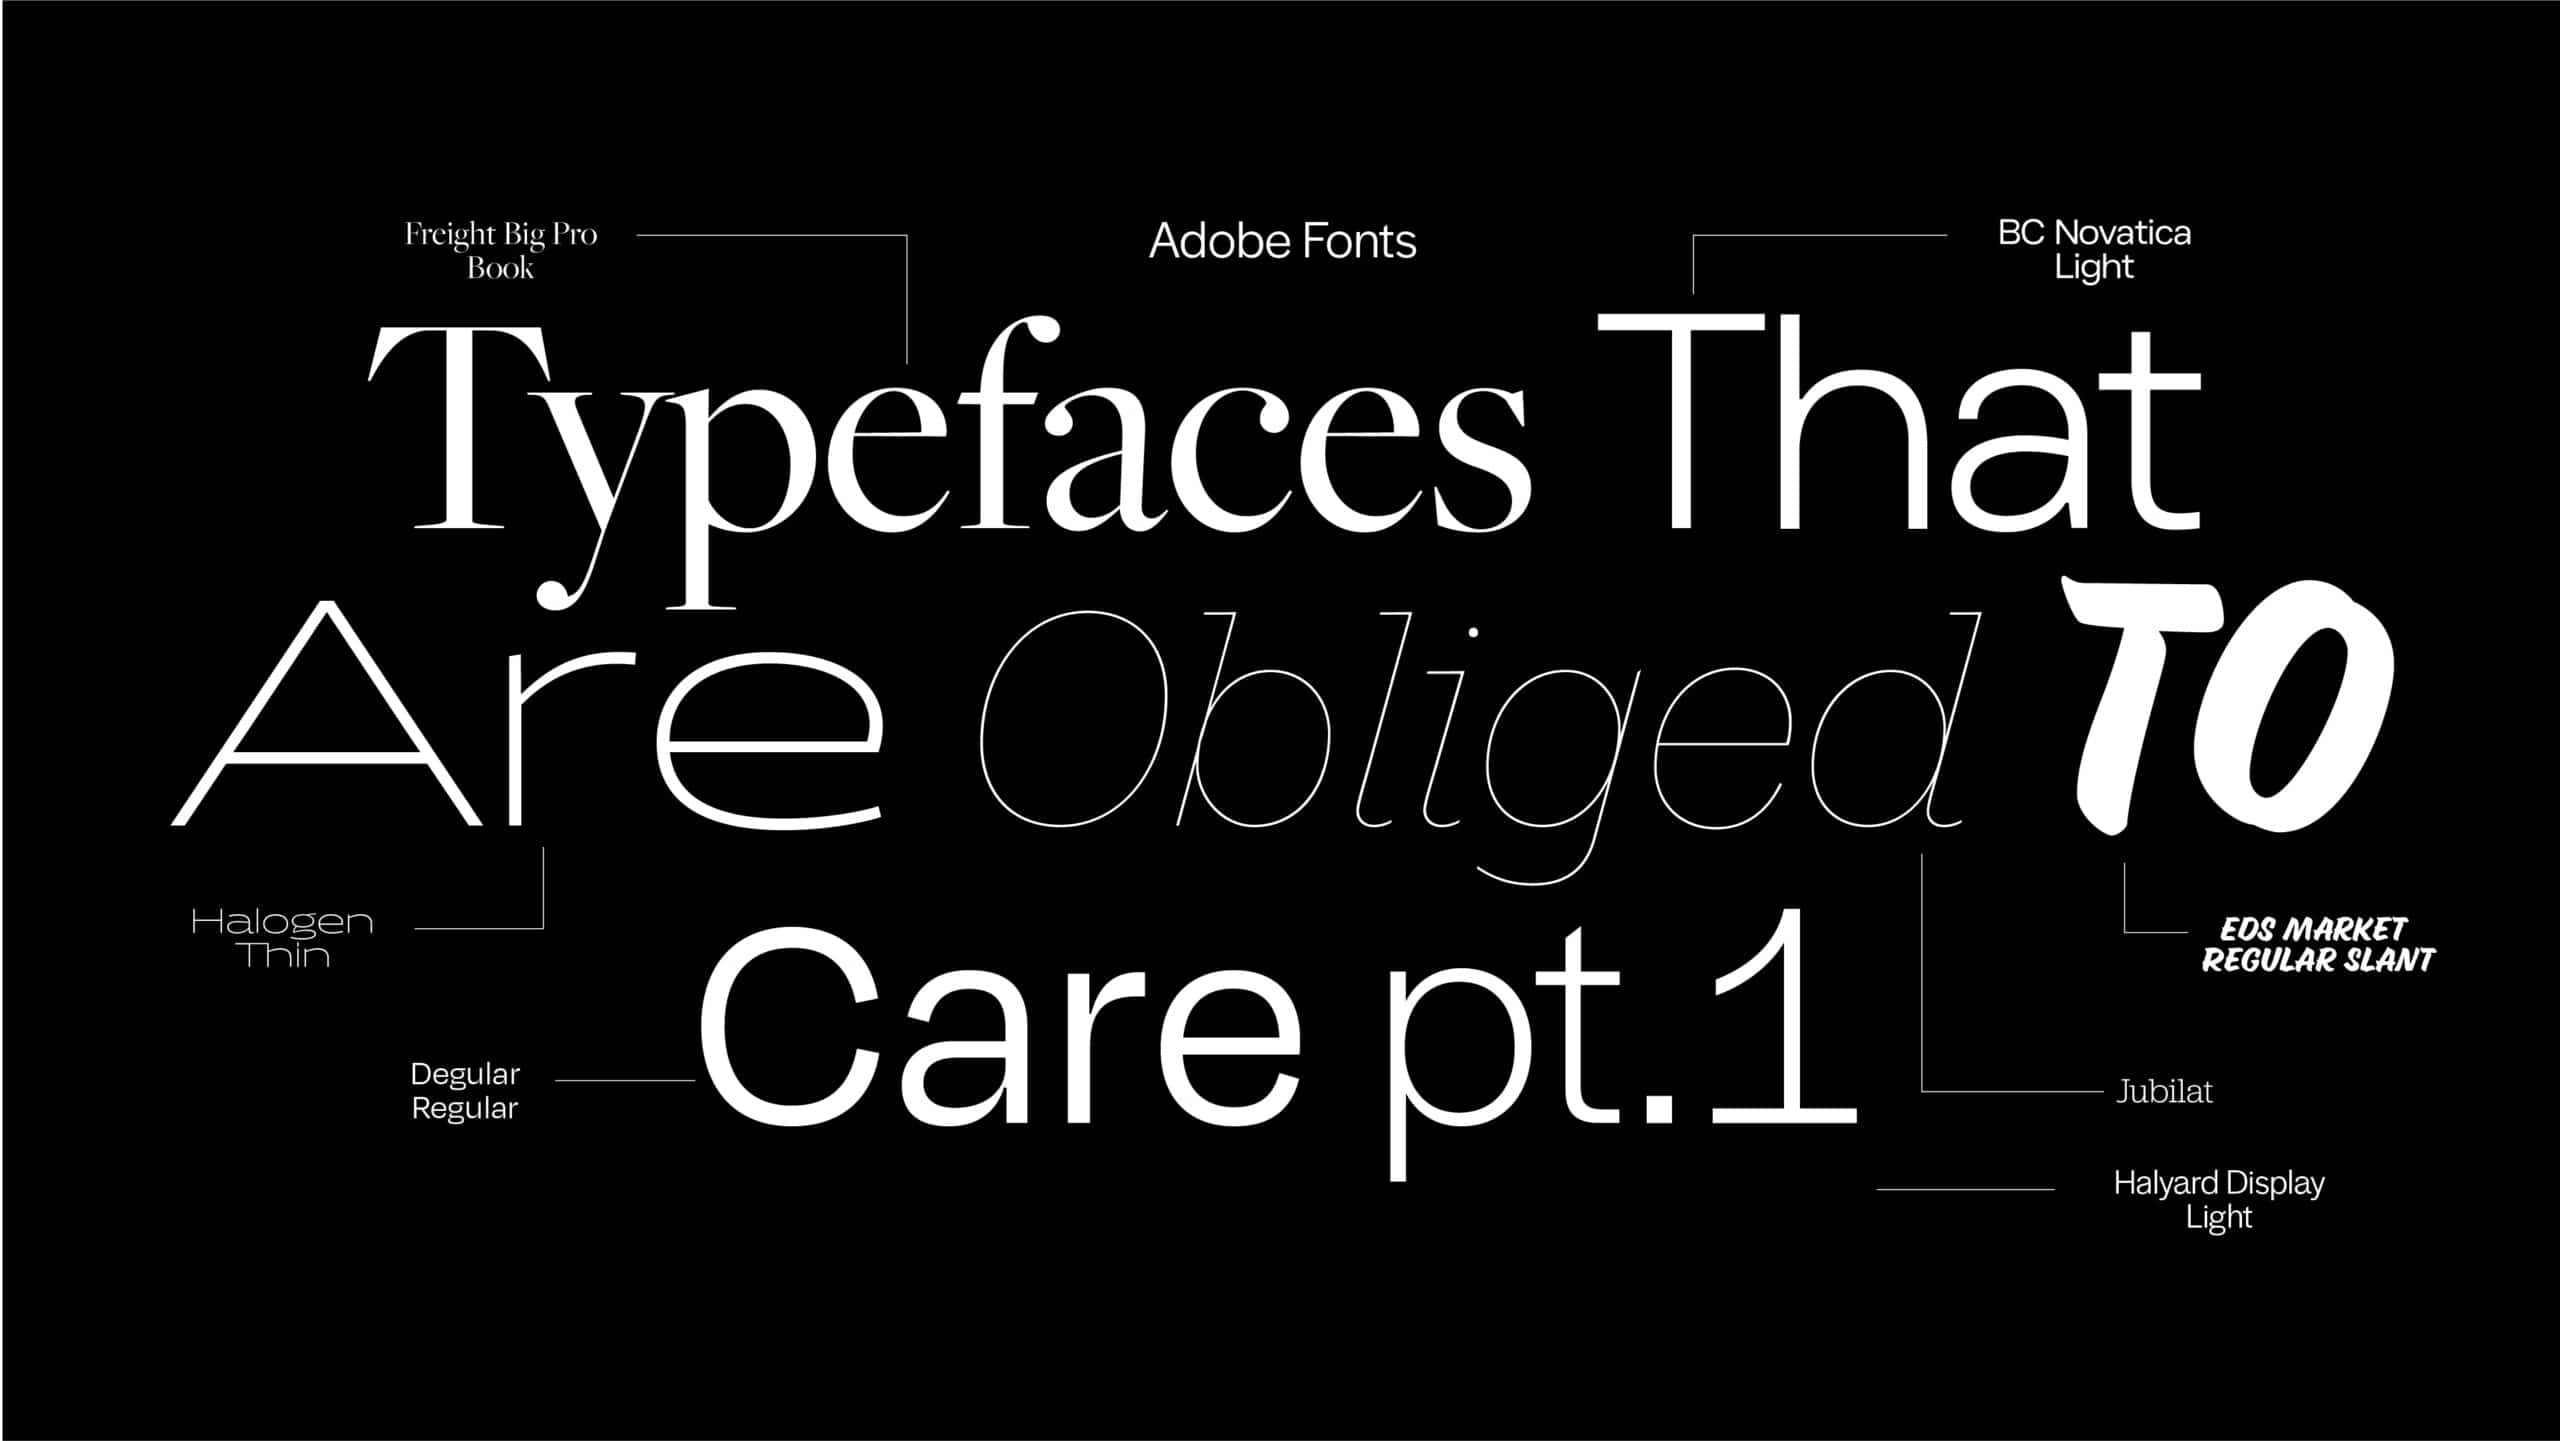 Top Adobe Fonts banner